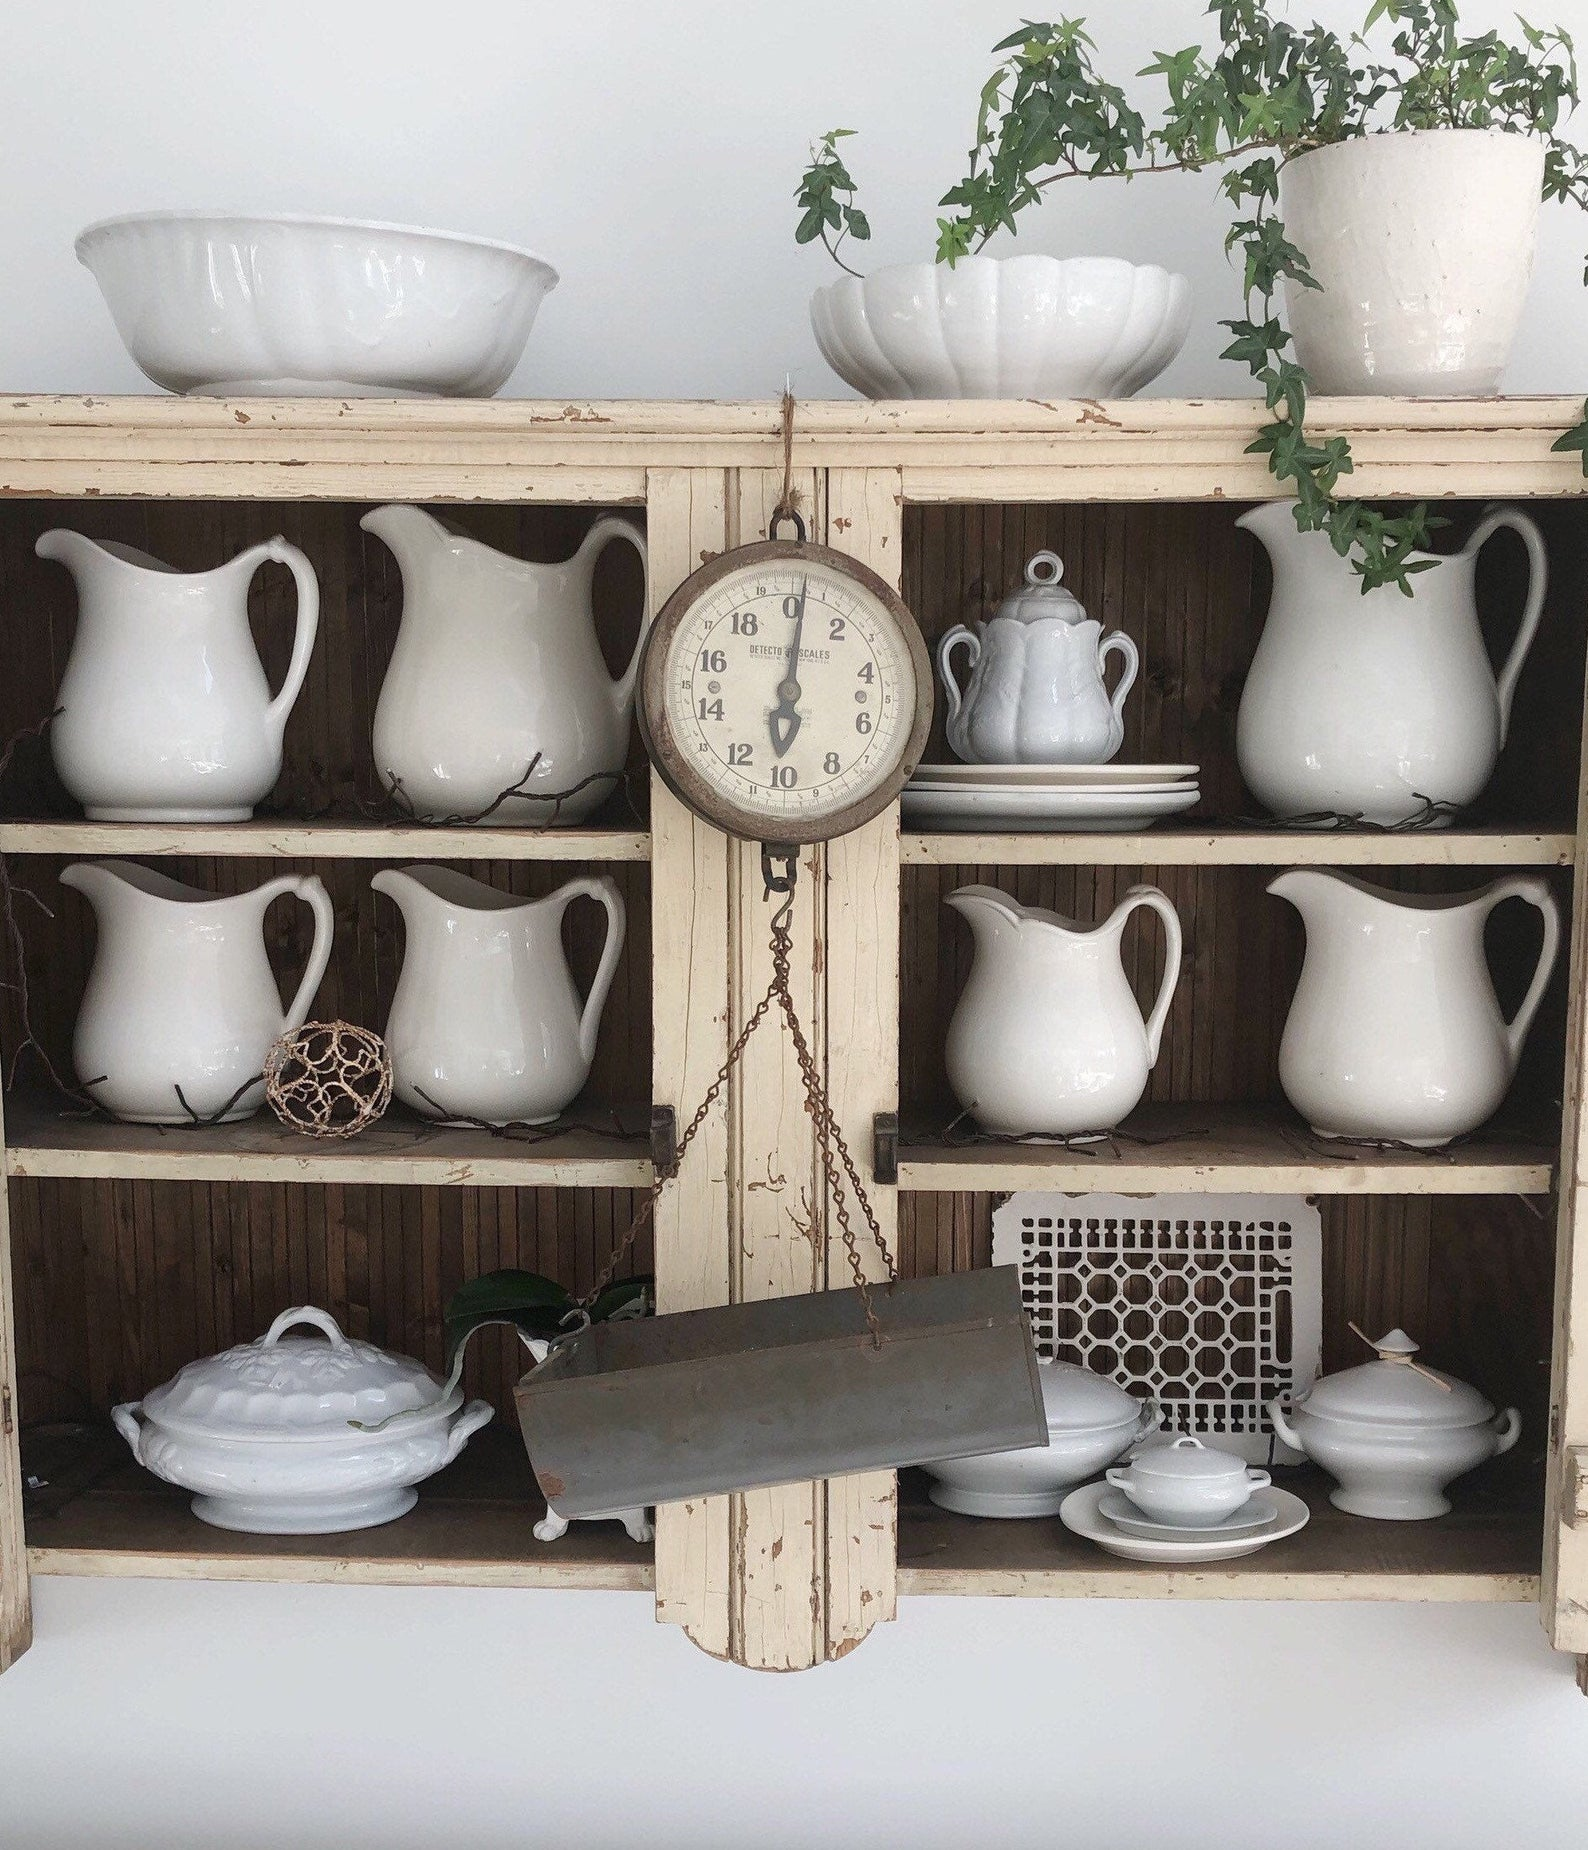 Ironstone pitcher collection in a vintage hutch cabinet